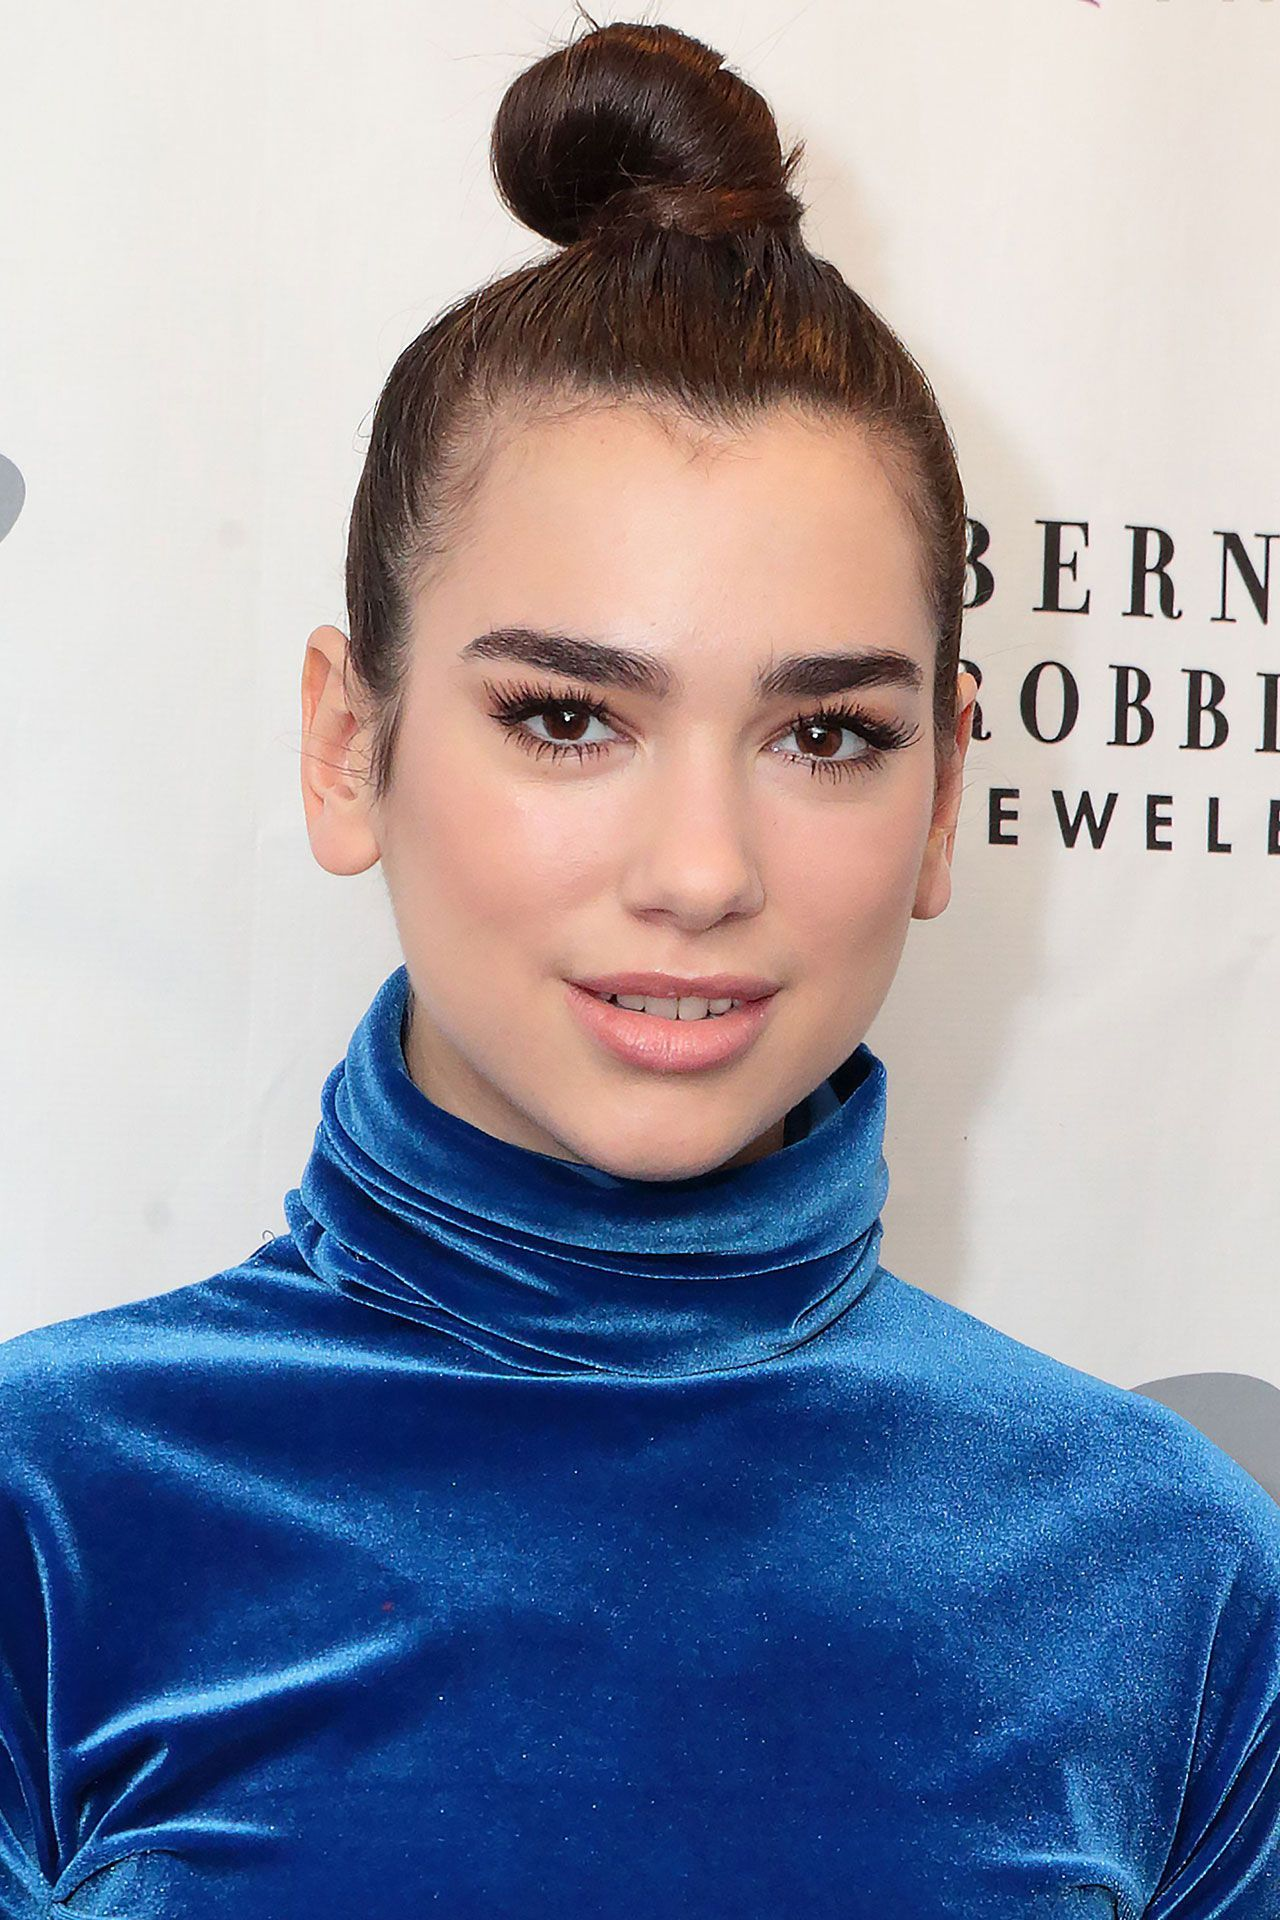 10 pictures that prove Dua Lipa is the ultimate new beauty